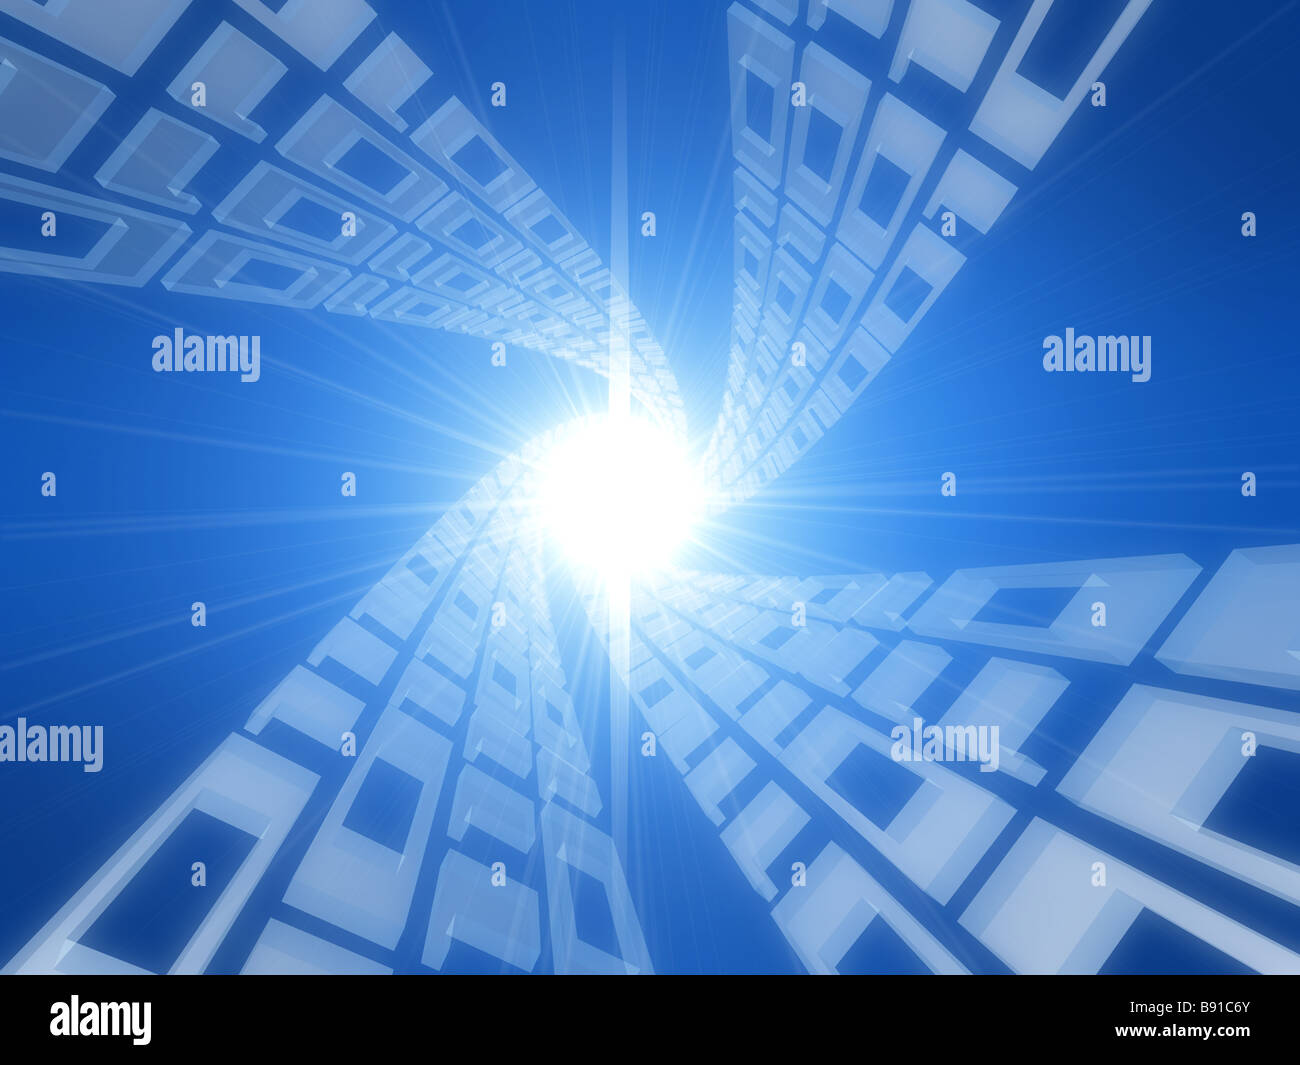 Secret Code Stock Photos Images Alamy Circuit Board And Binary Forming A Mysterious Night Landscape Of Image